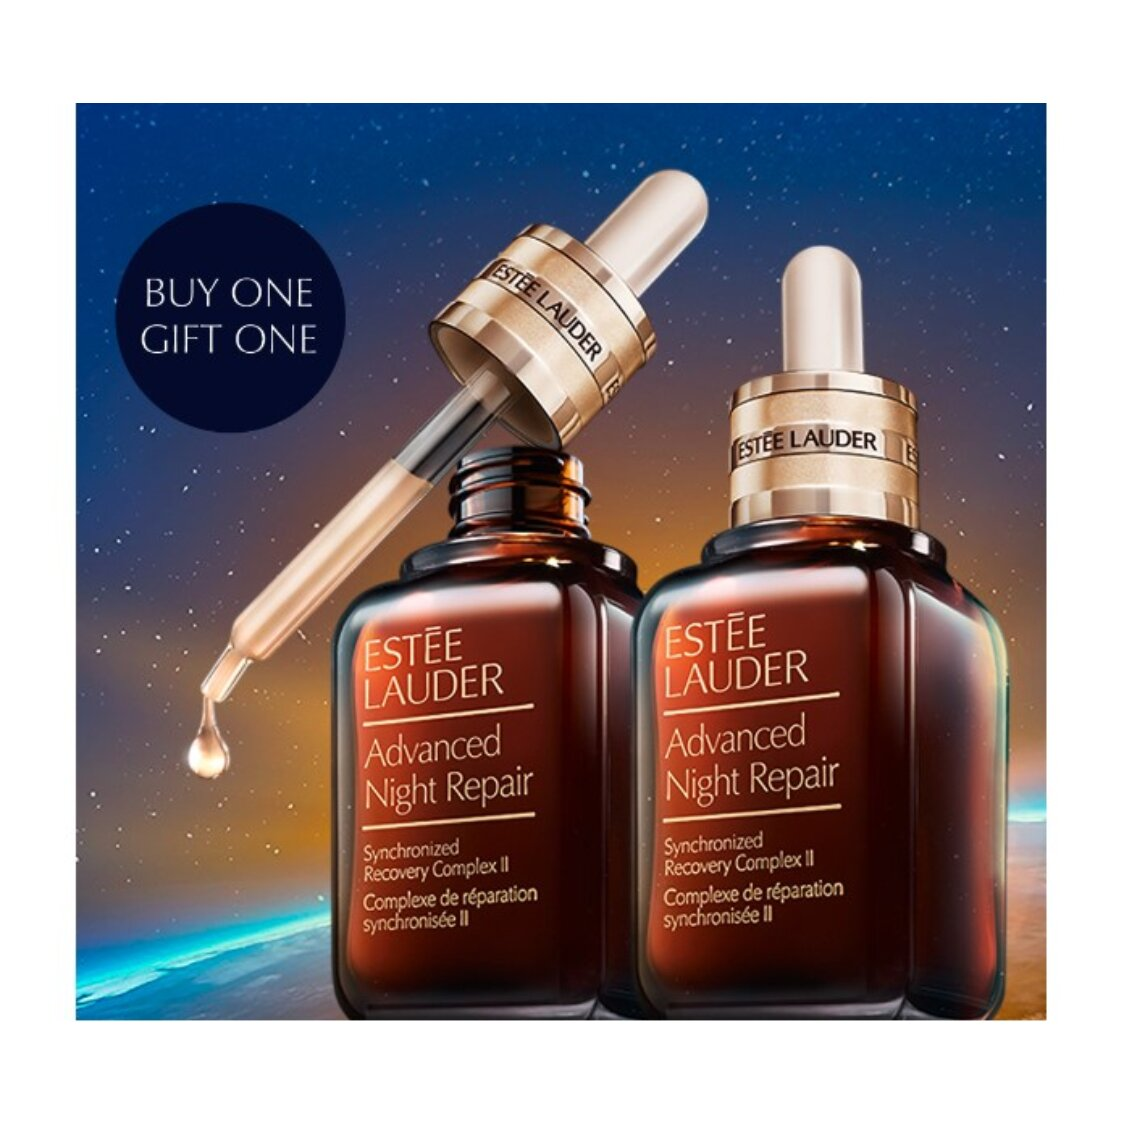 Advanced Night Repair Synchronized Recovery Complex II 50ml Set worth 350